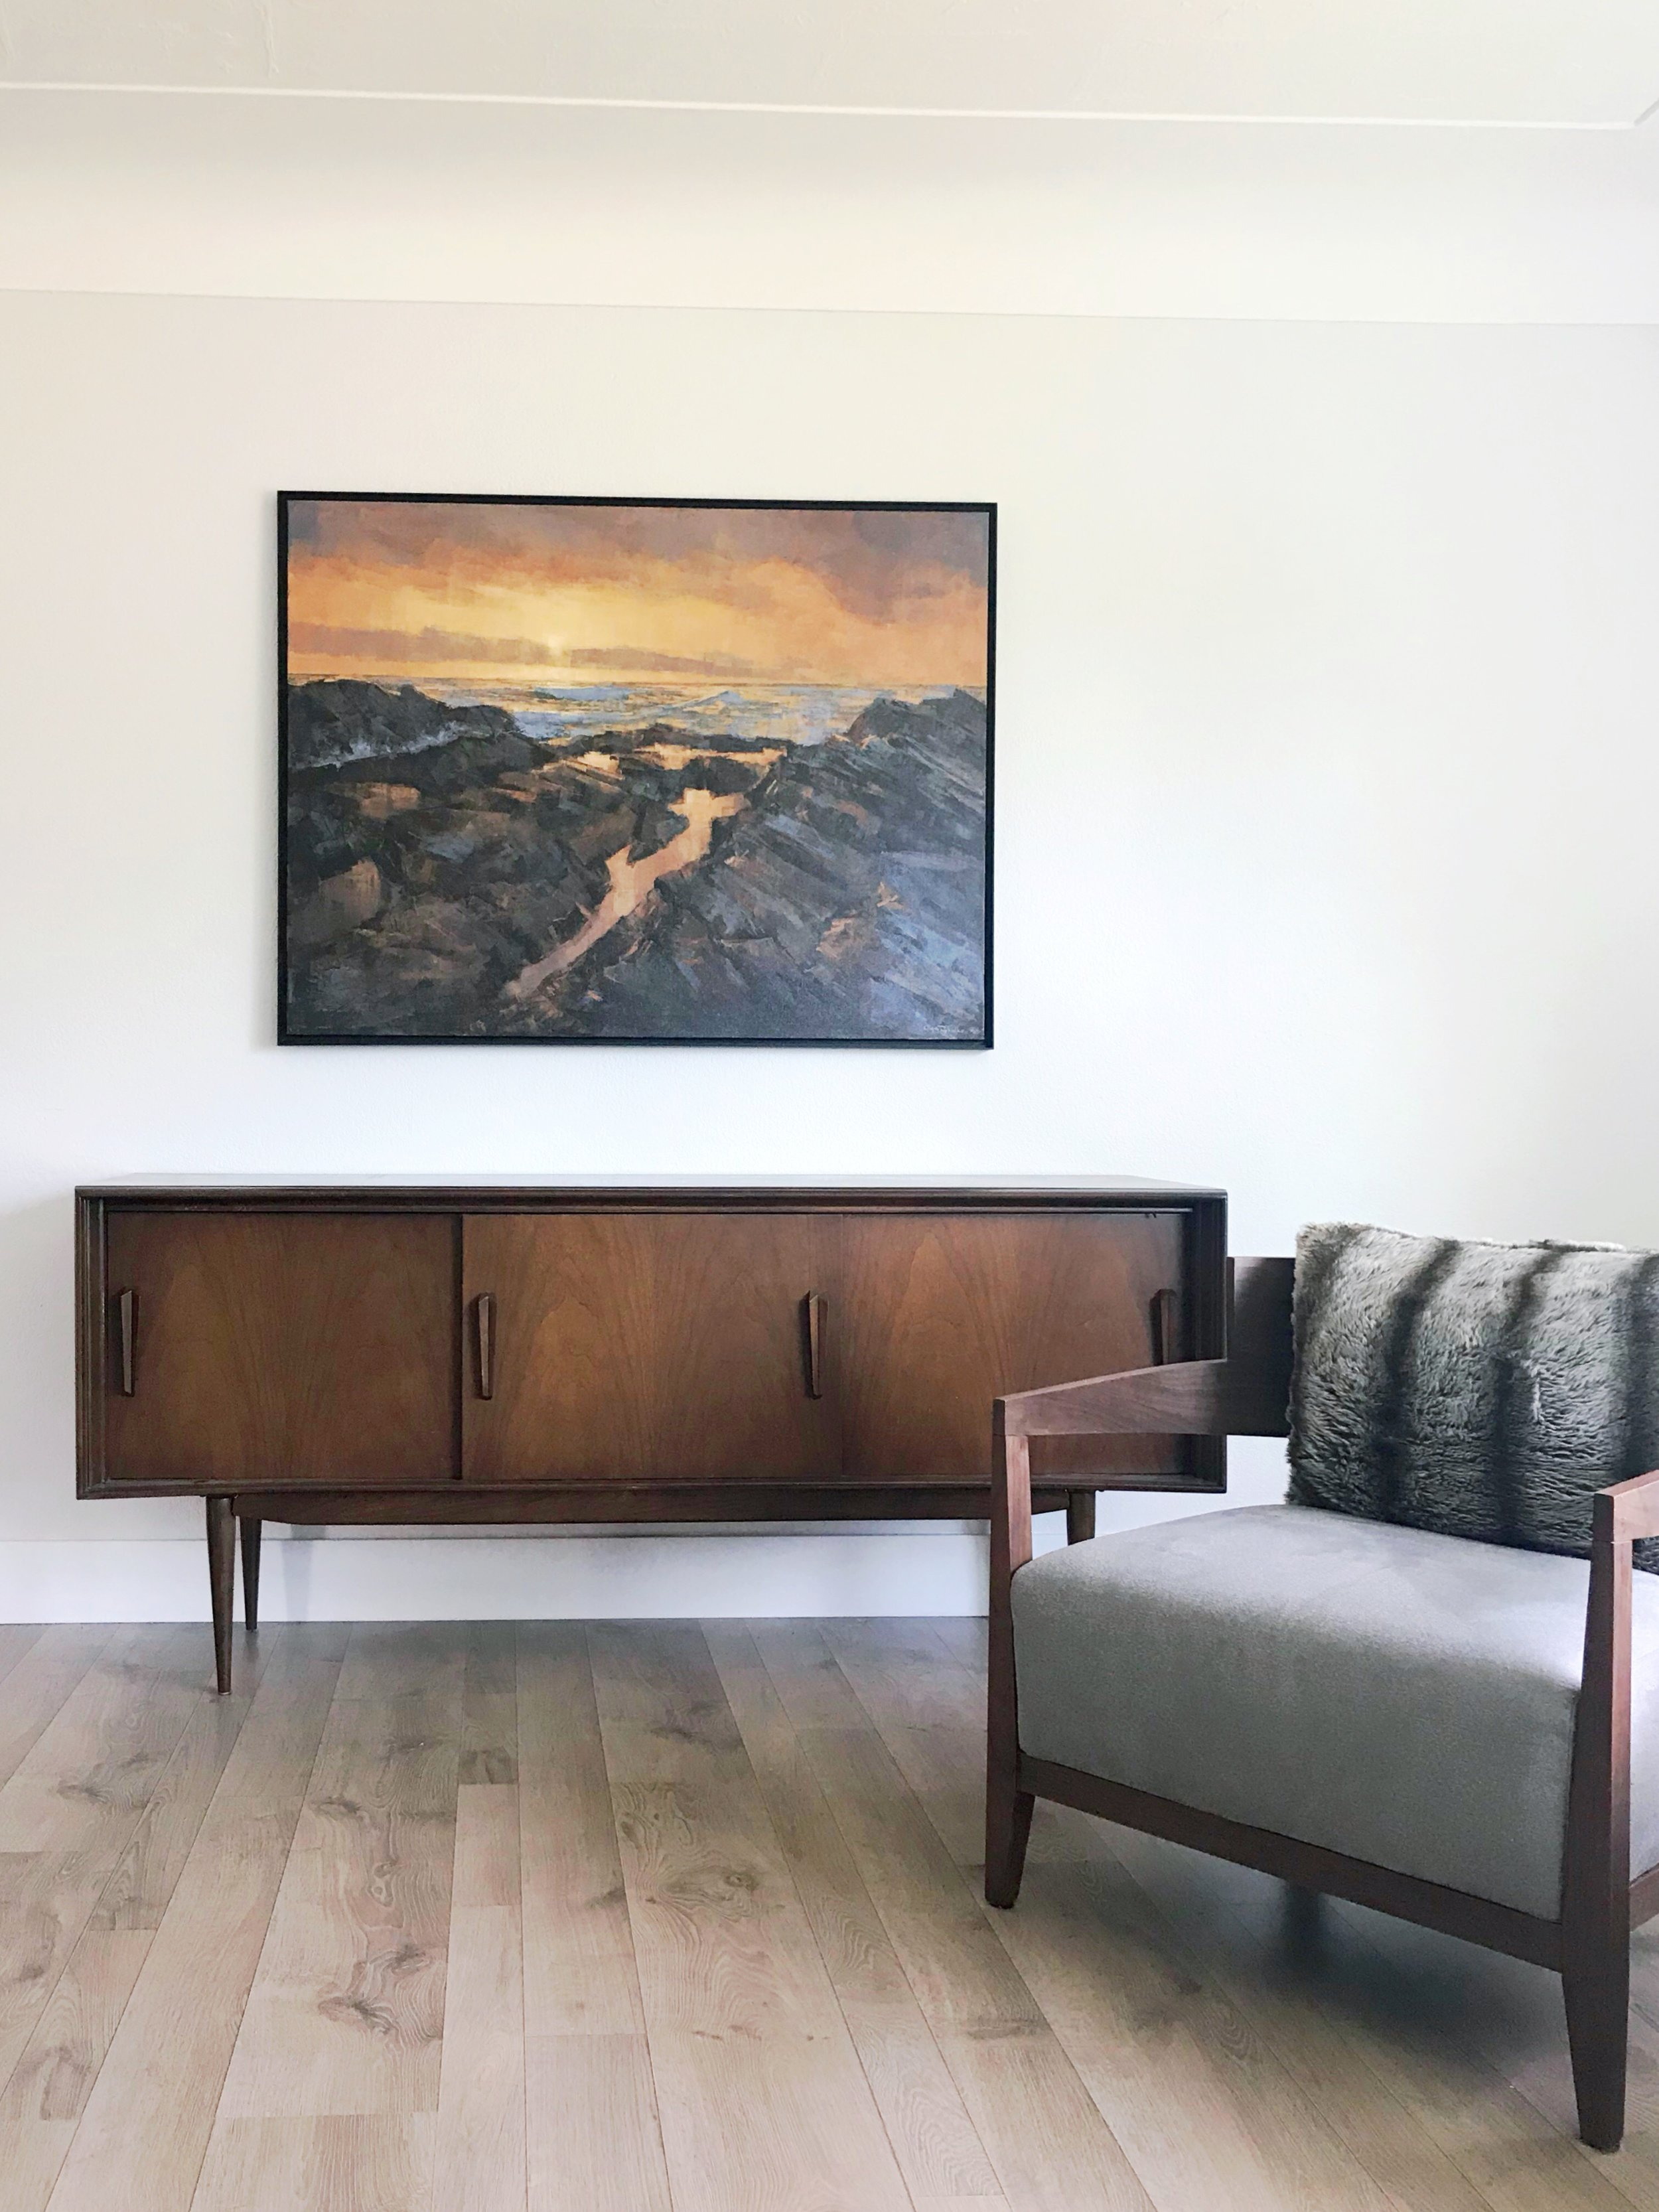 Good Morning, installed in a private residence, Vancouver